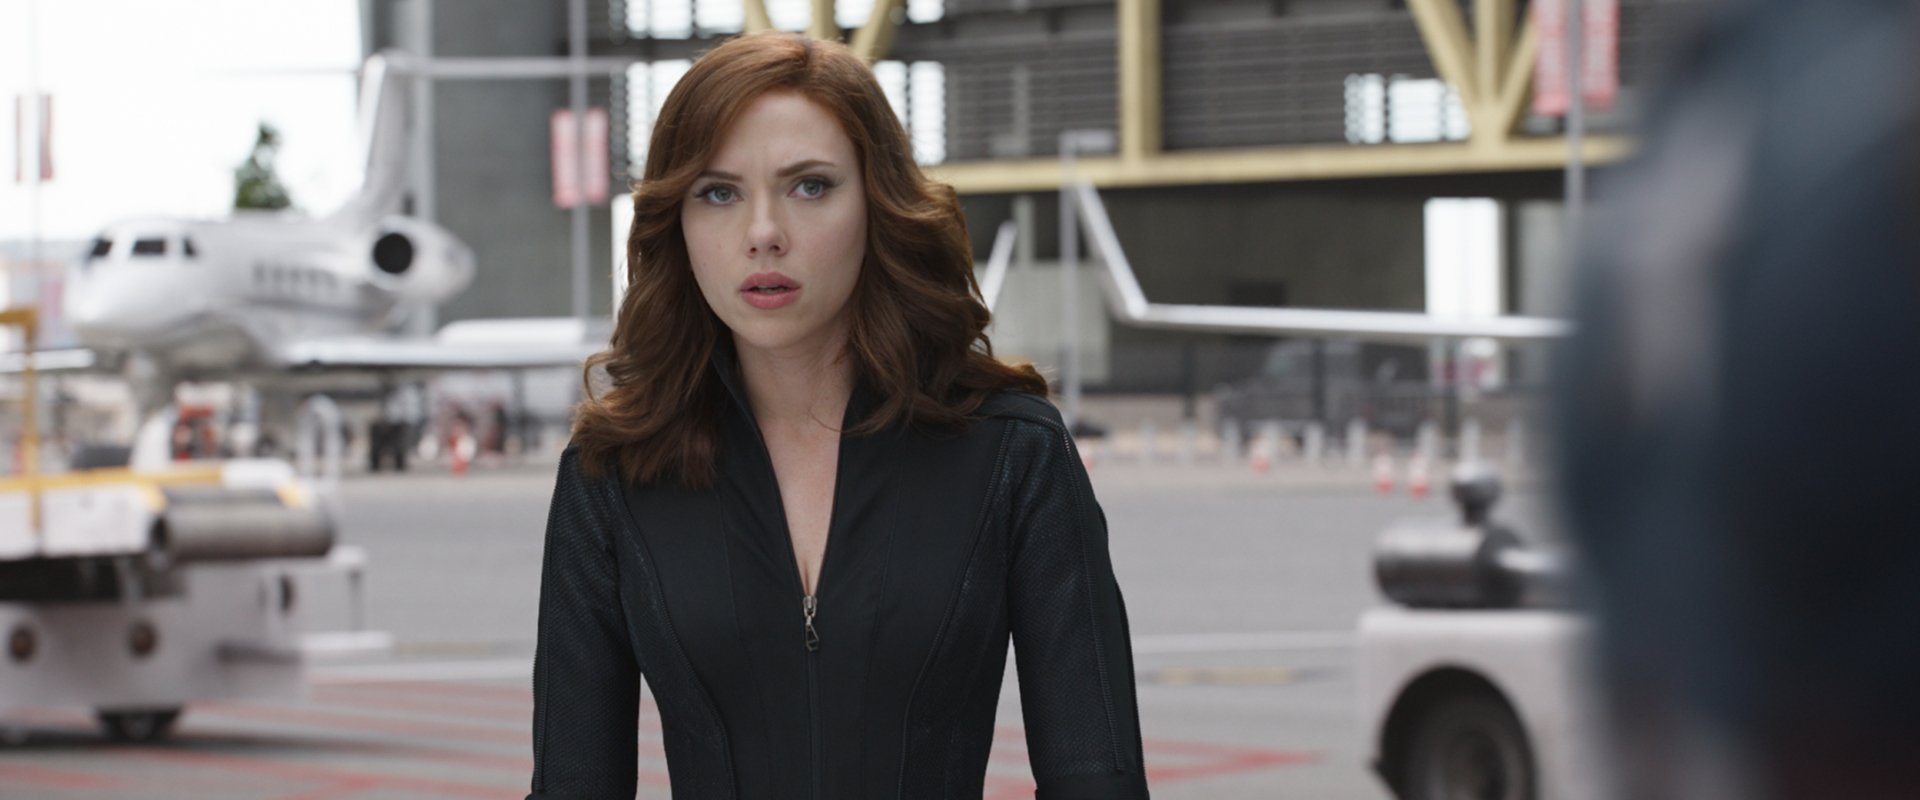 Movie - Captain America: Civil War  Scarlett Johansson Black Widow Natasha Romanoff Wallpaper